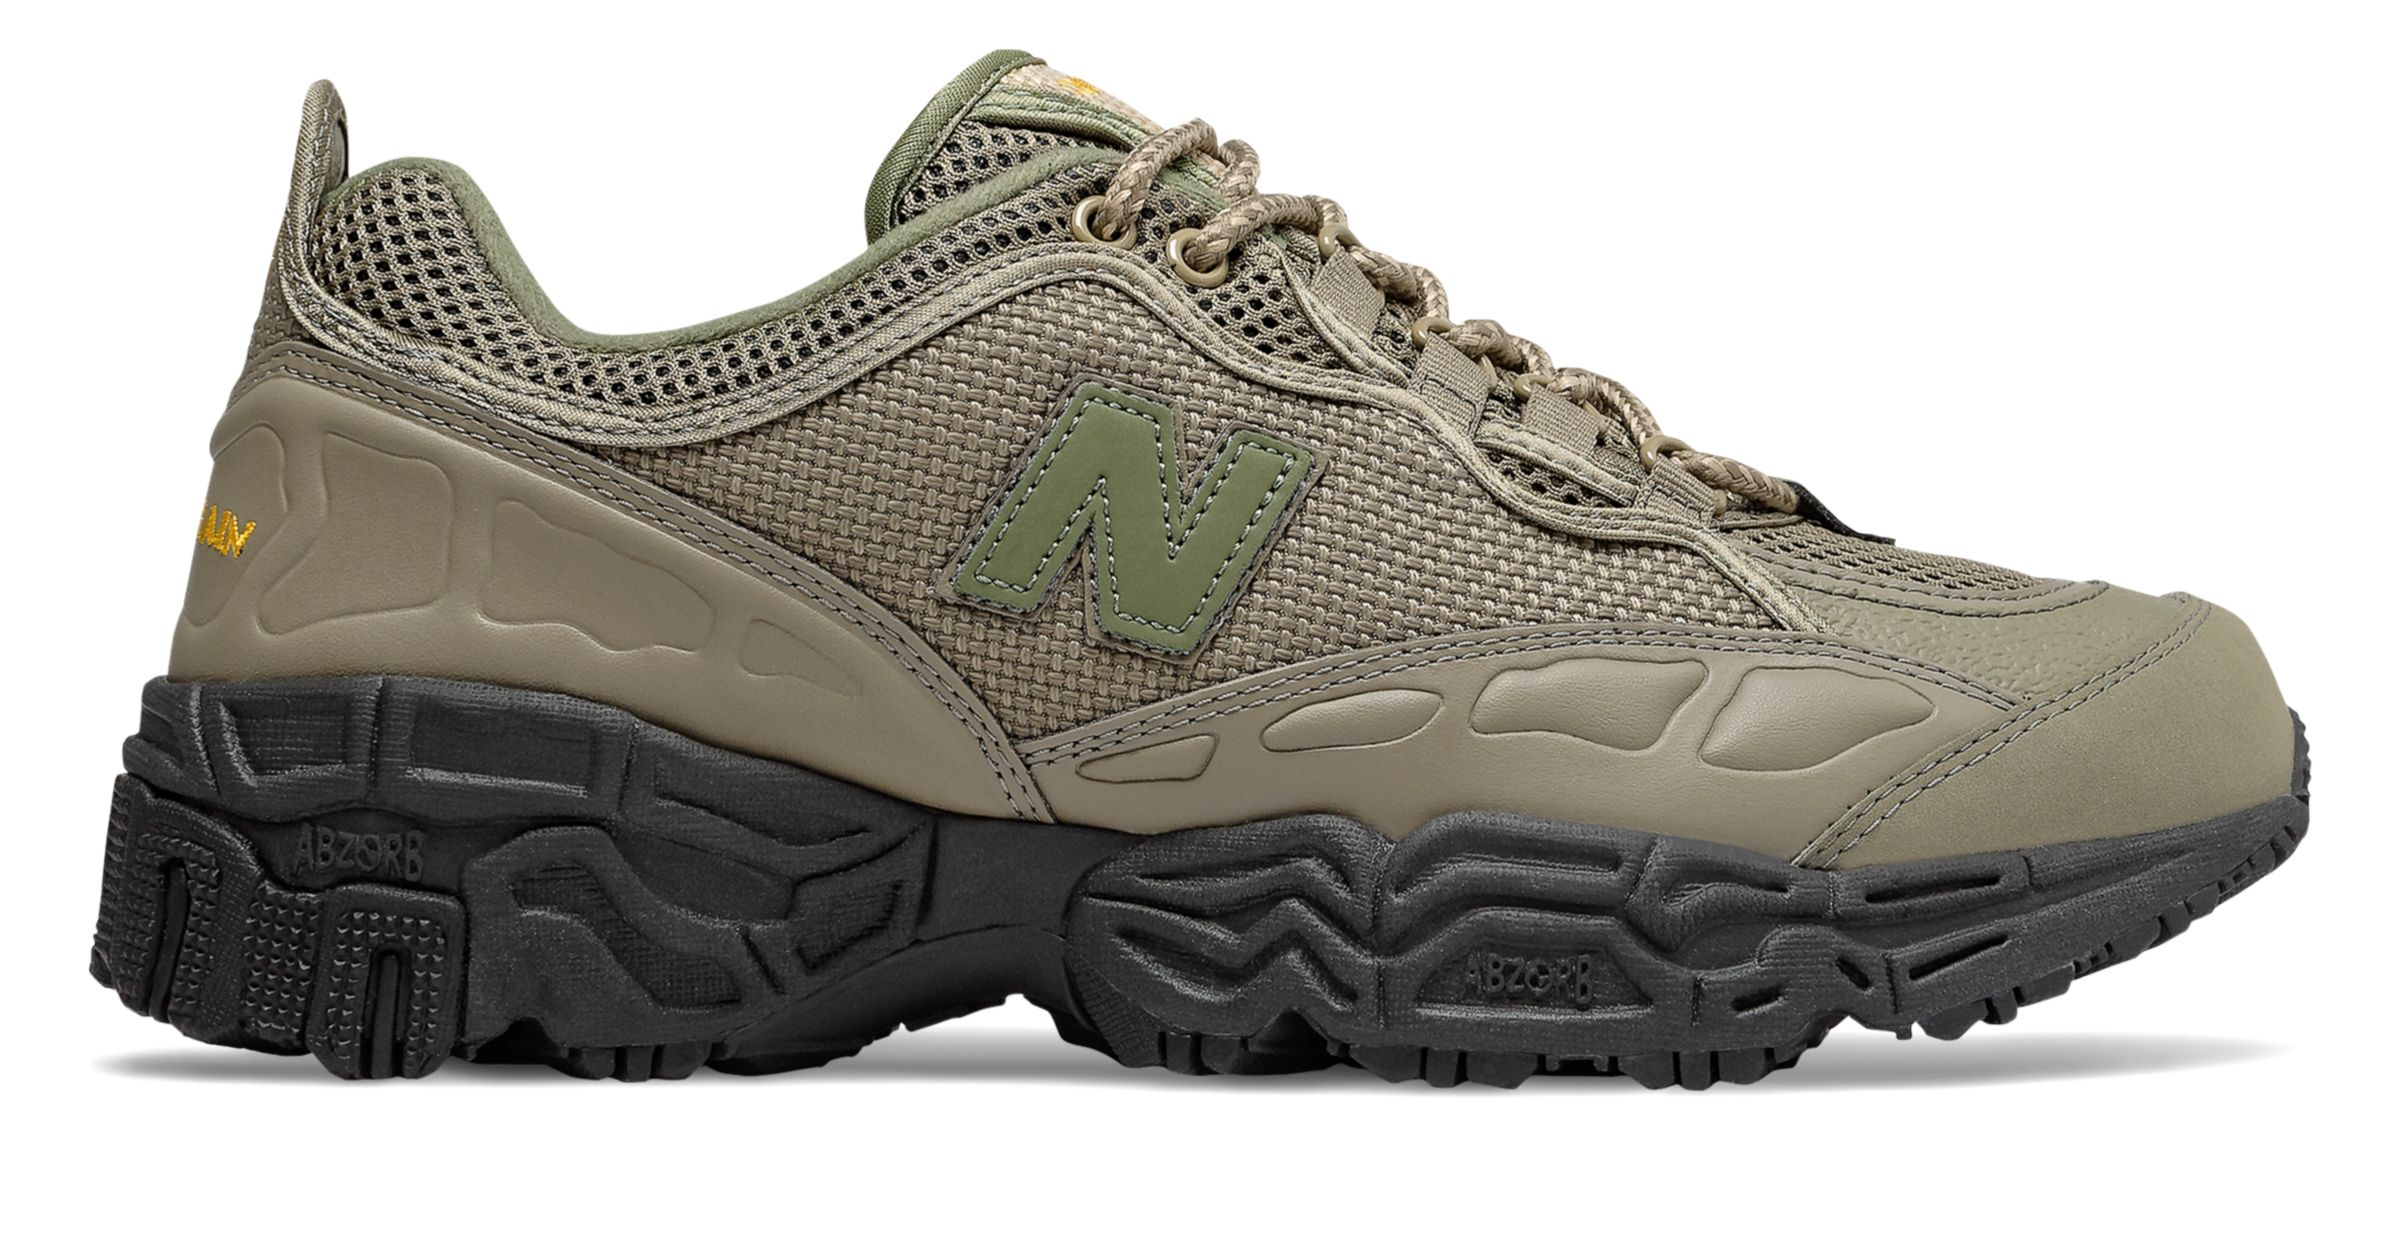 A trail-inspired sneaker for the rugged outdoors.